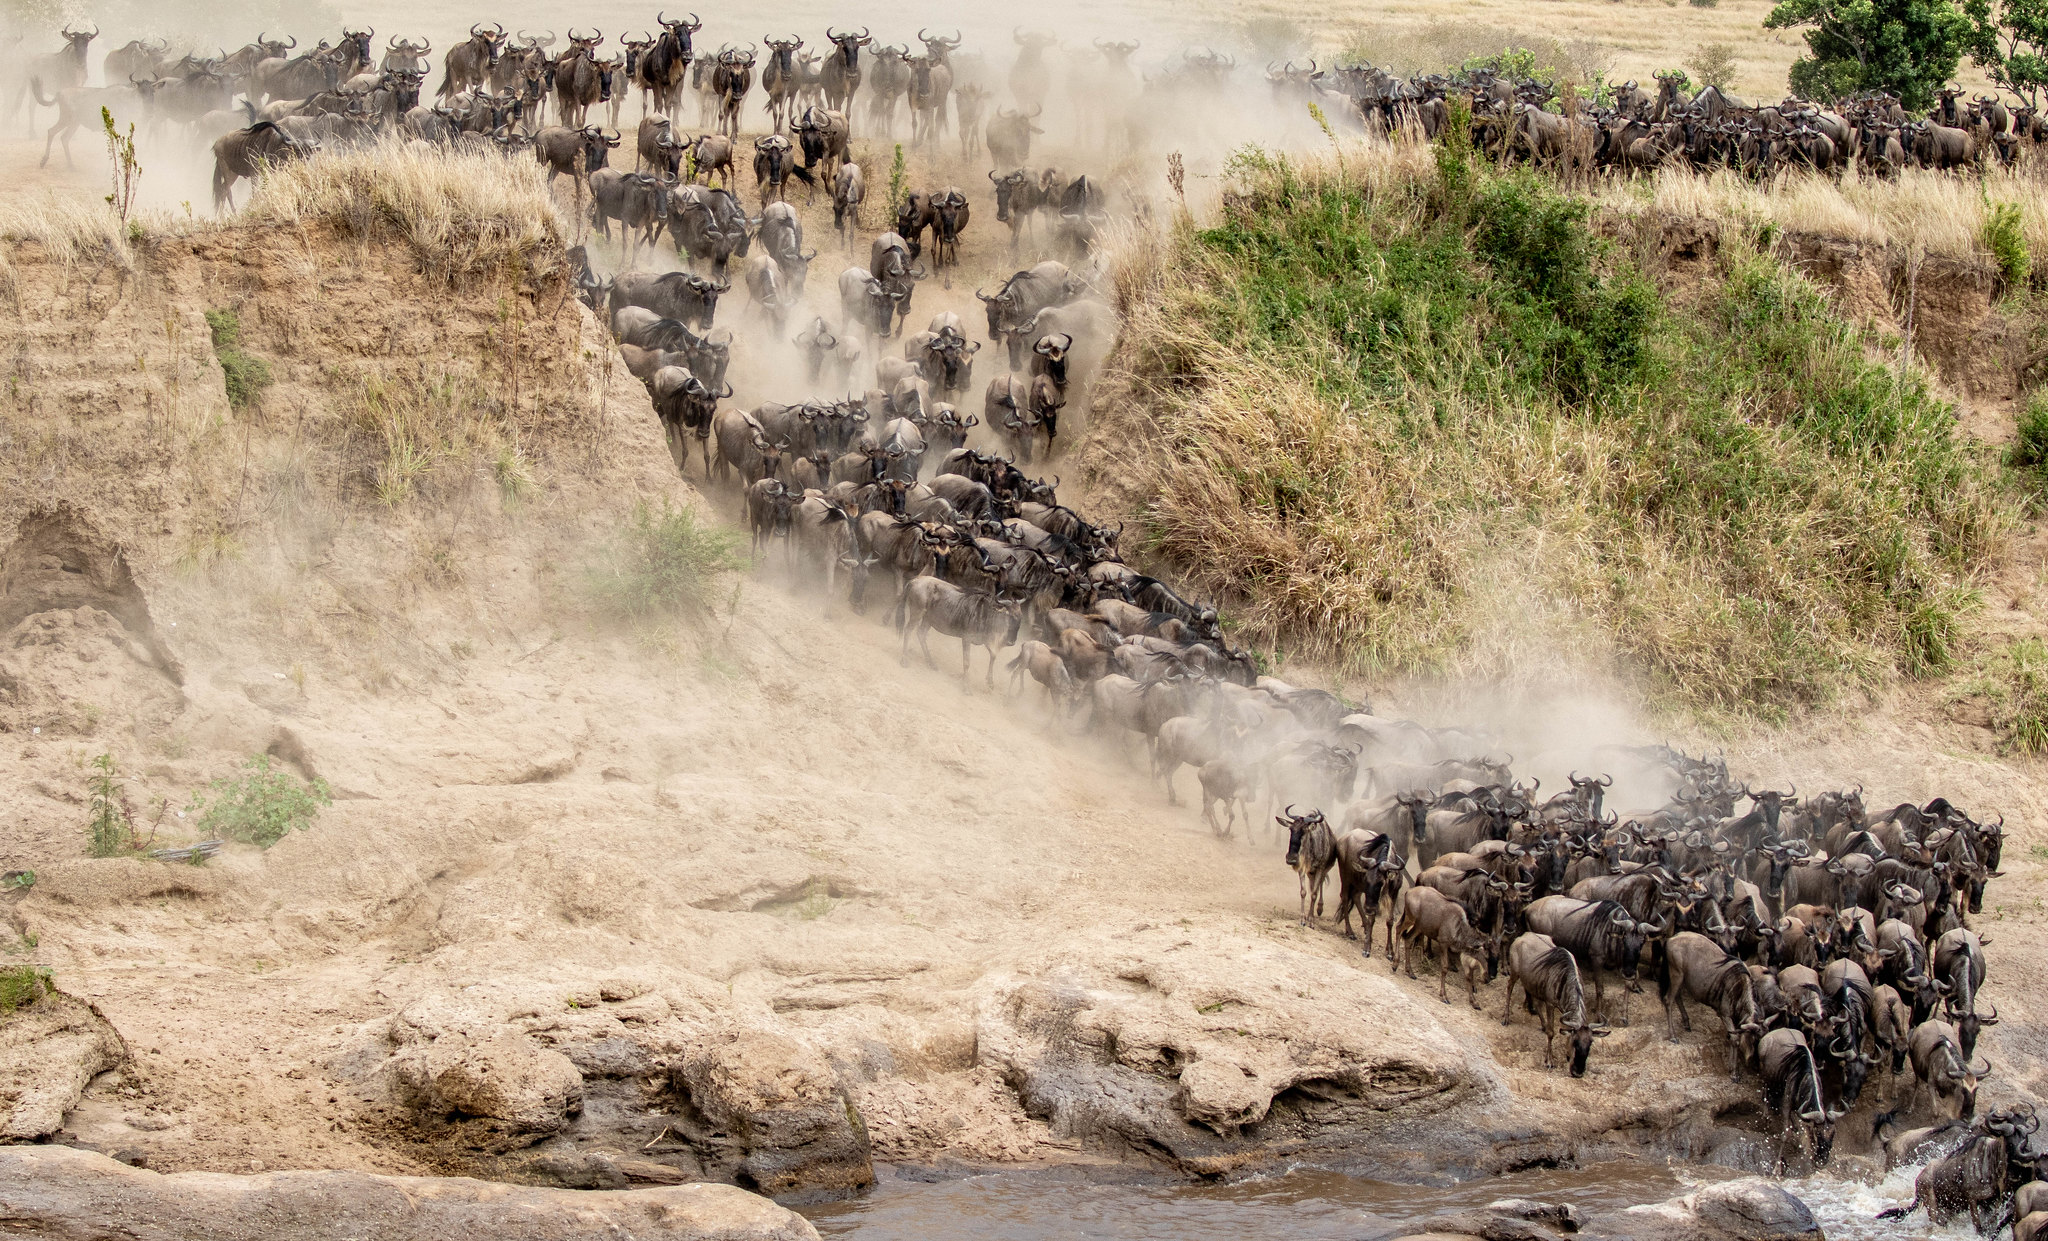 Crossing the Talek at Entim Camp, Maasai Mara